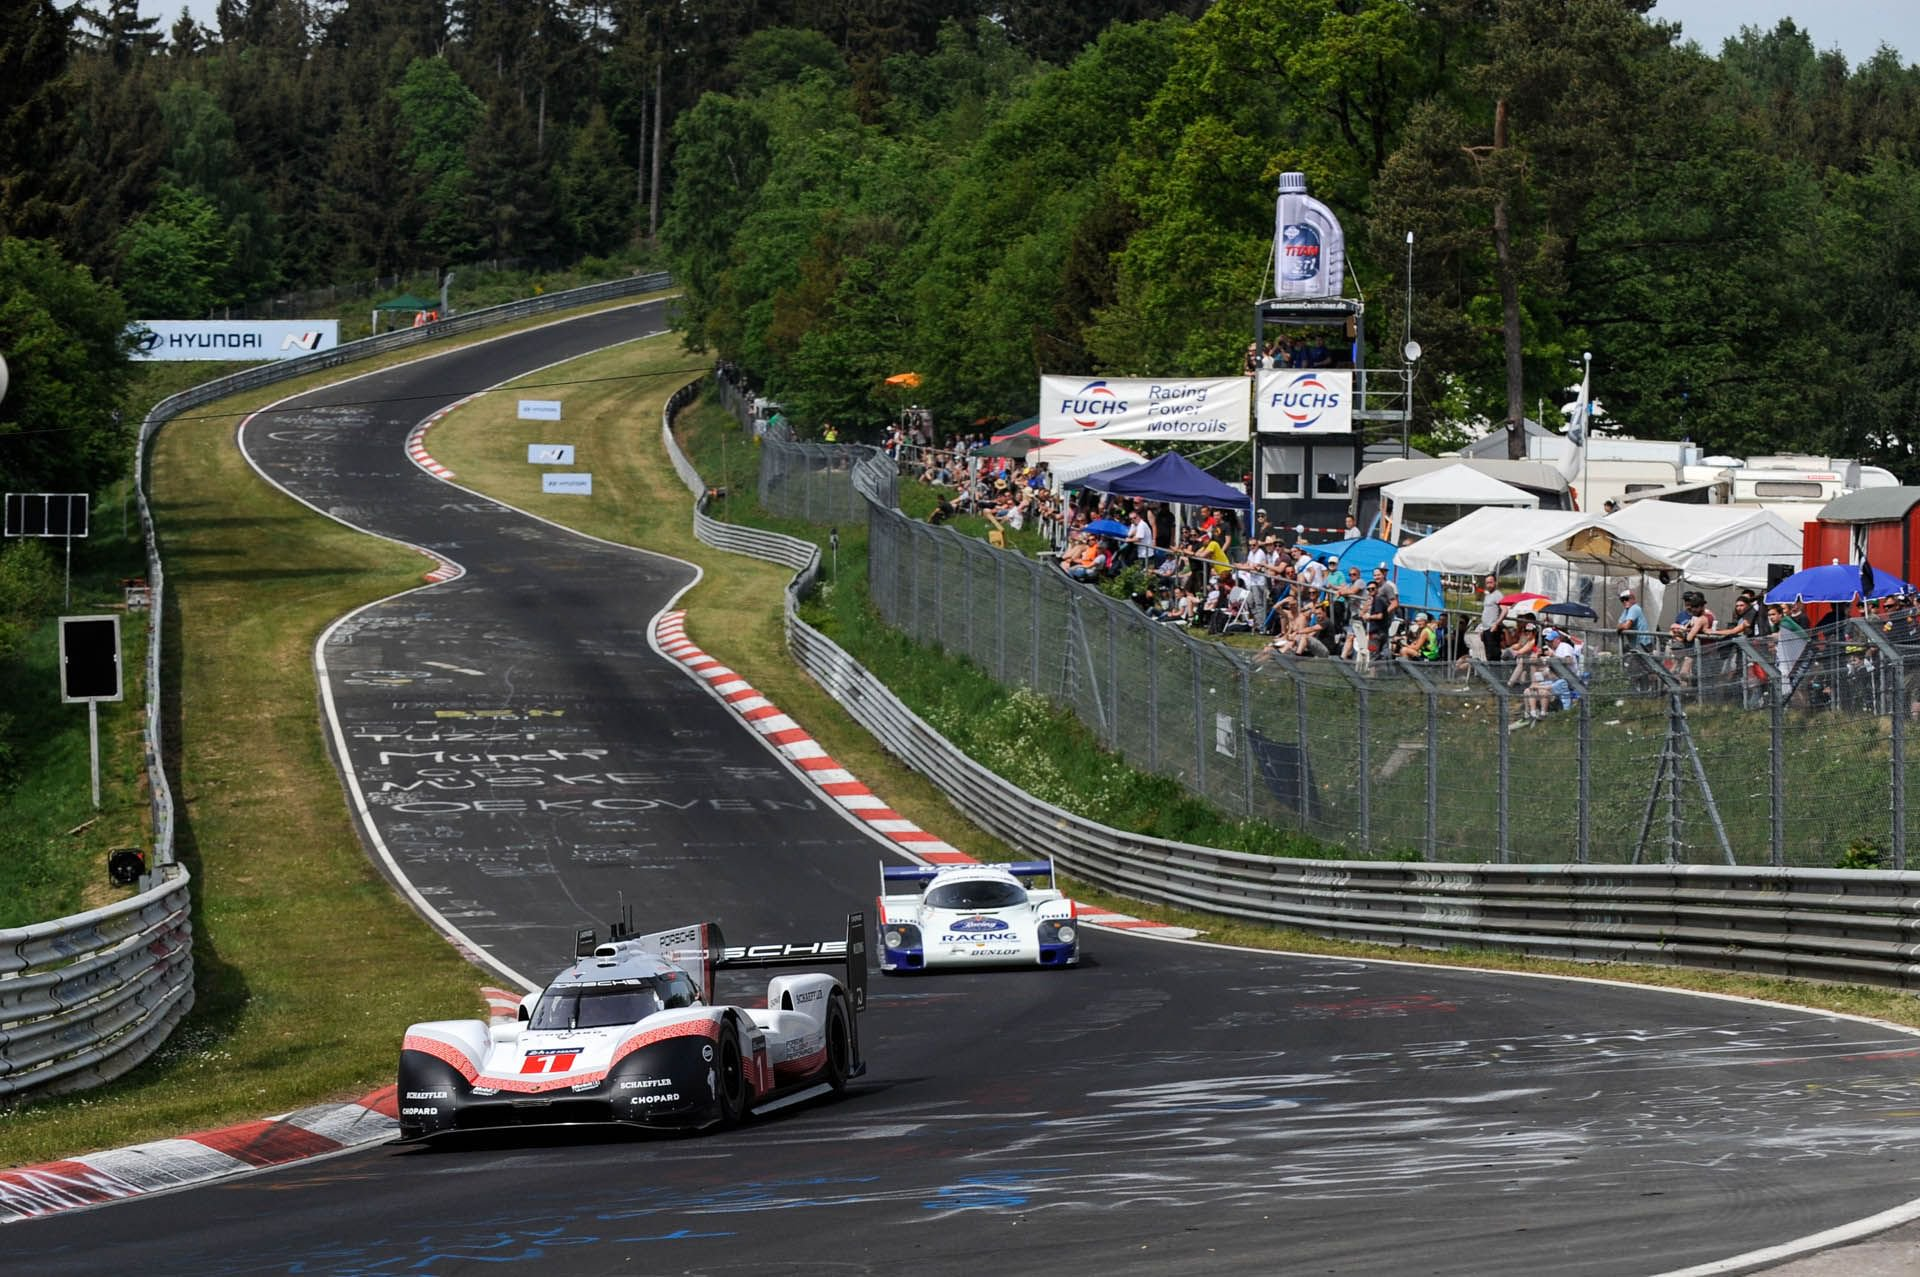 Porsche 919 Hybrid Evo and 956 at Nurburgring (7)